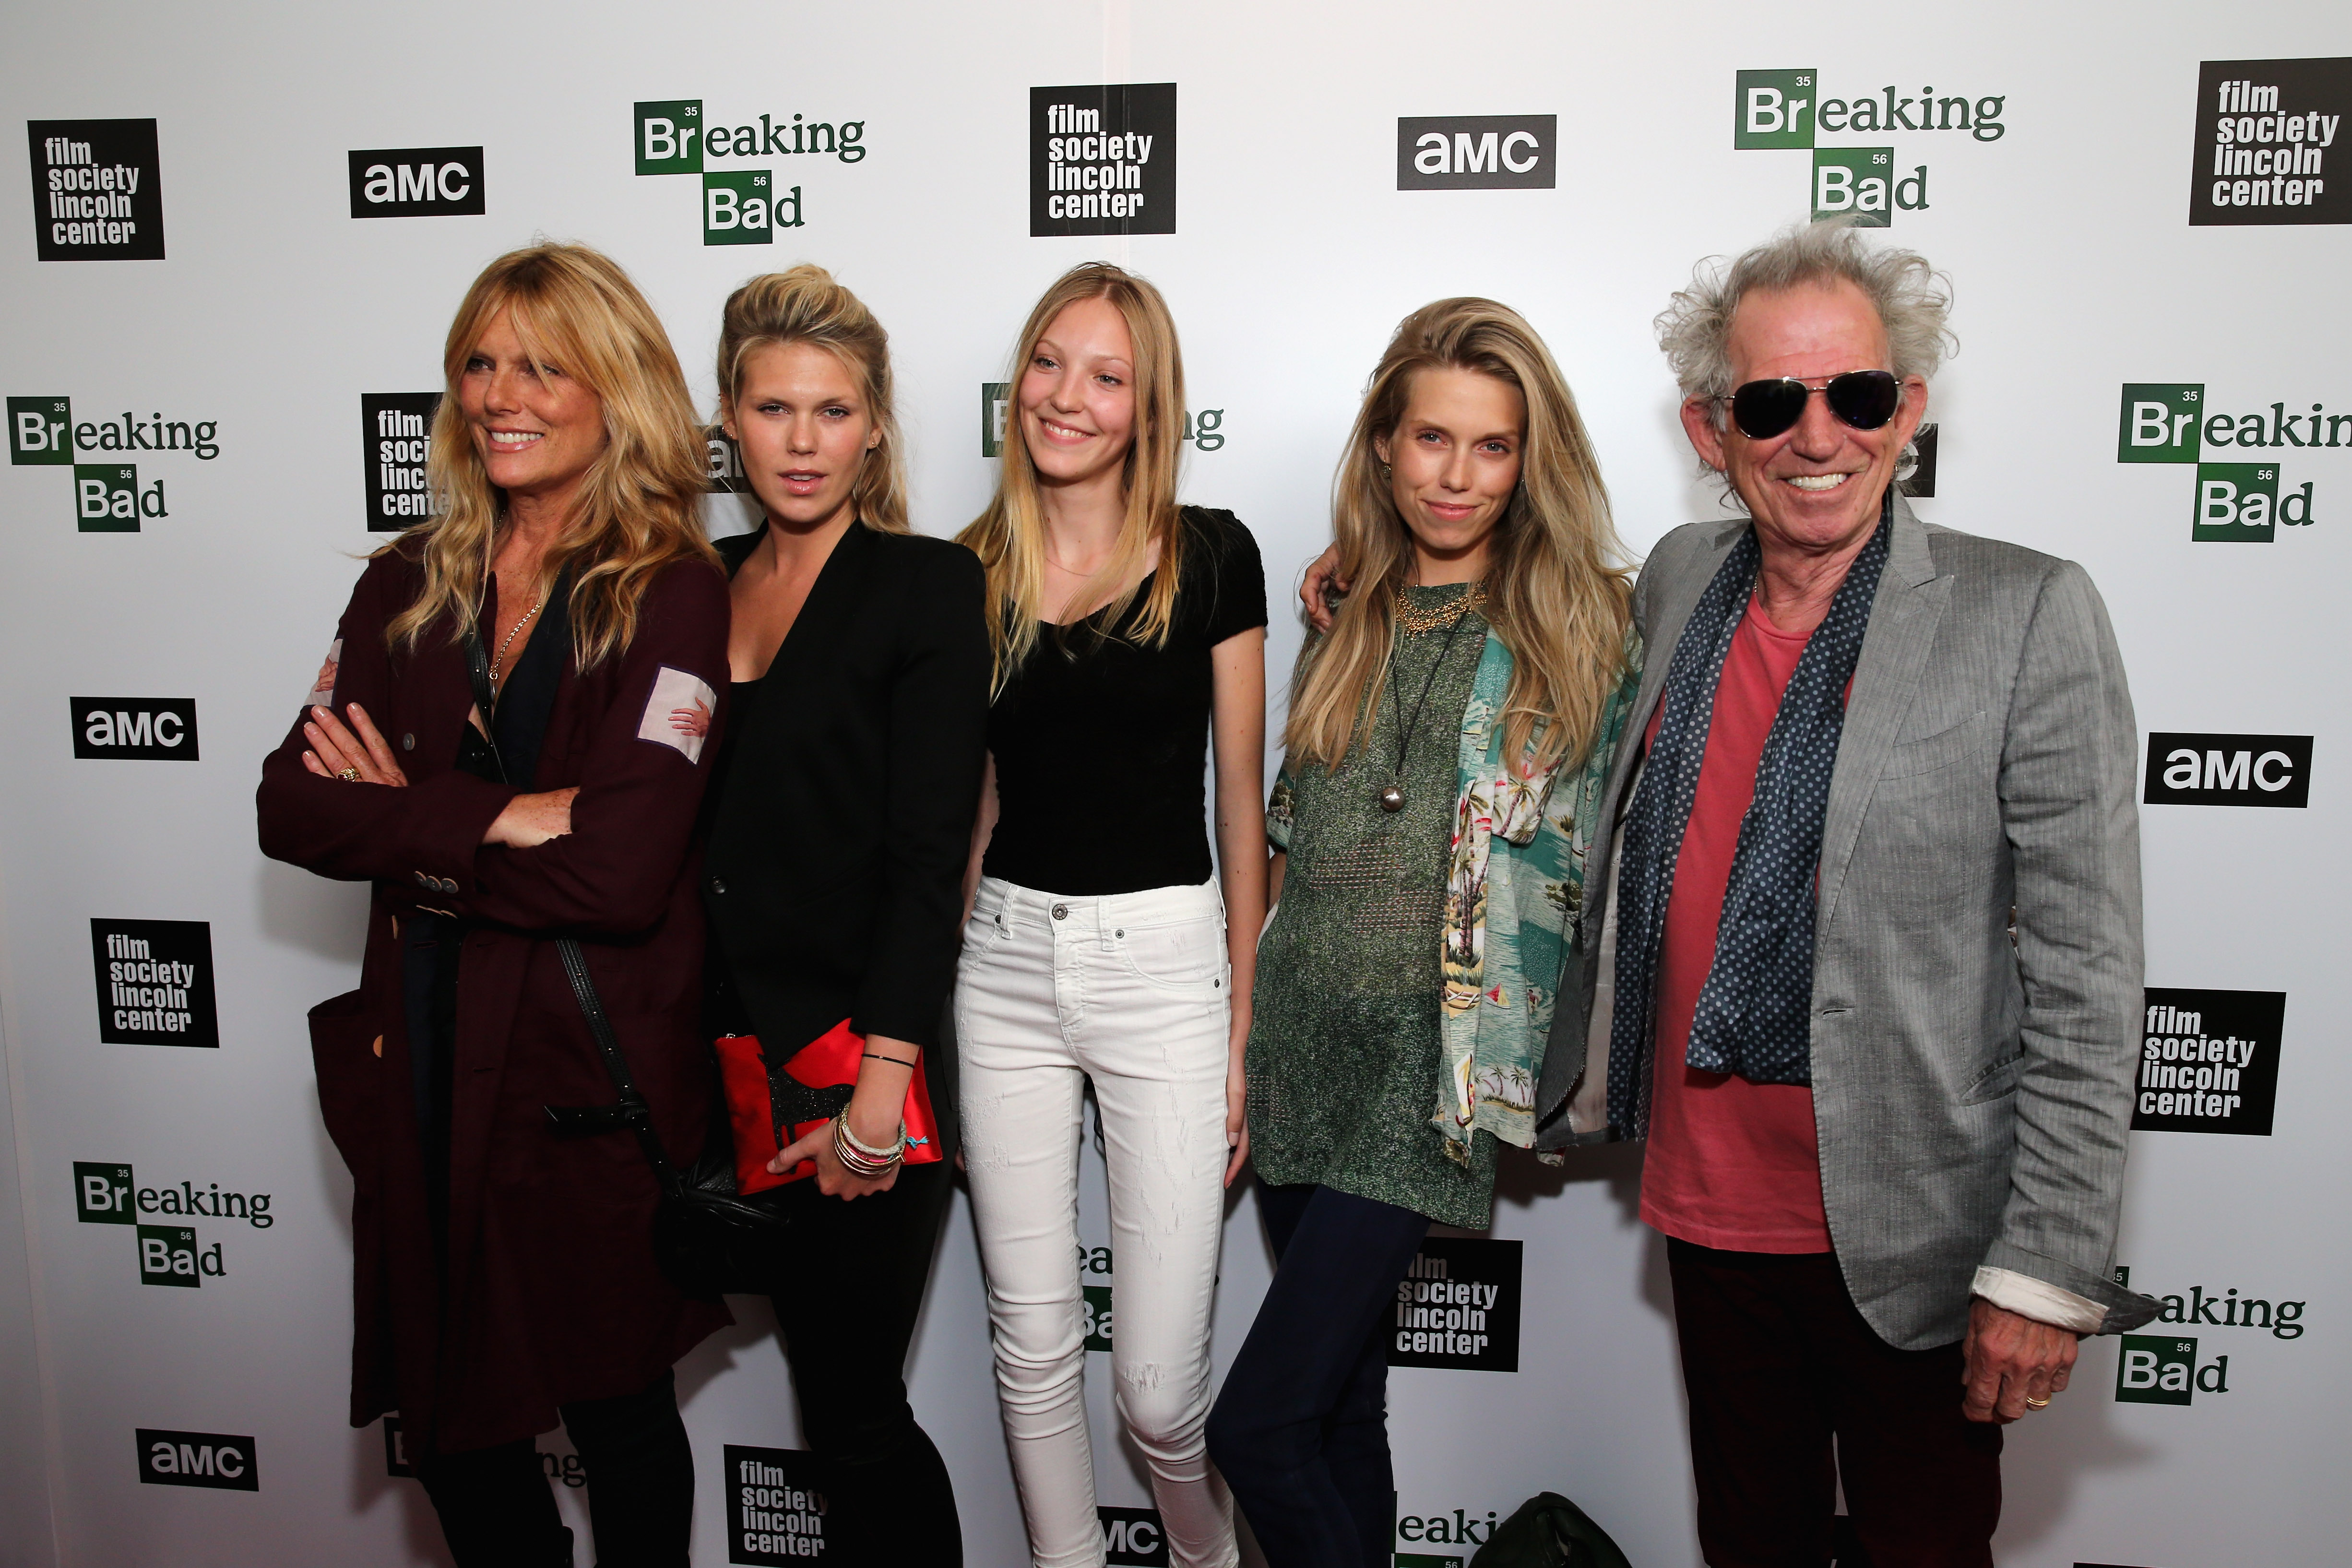 """NEW YORK, NY - JULY 31:  (L-R) Models Patti Hansen, Alexandra Richards, Ella Richards, Theodora Richards, and musician Keith Richards attend The Film Society of Lincoln Center and AMC Celebration of """"Breaking Bad"""" Final Episodes  at The Film Society of Lincoln Center, Walter Reade Theatre on July 31, 2013 in New York City.  (Photo by Neilson Barnard/Getty Images)"""